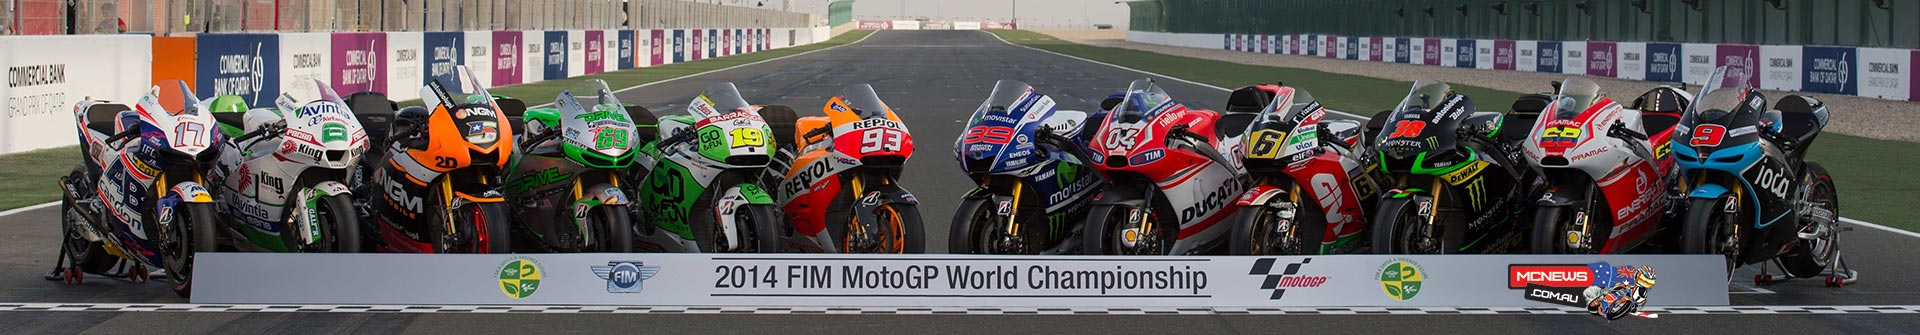 MotoGP Machinery line-up 2014